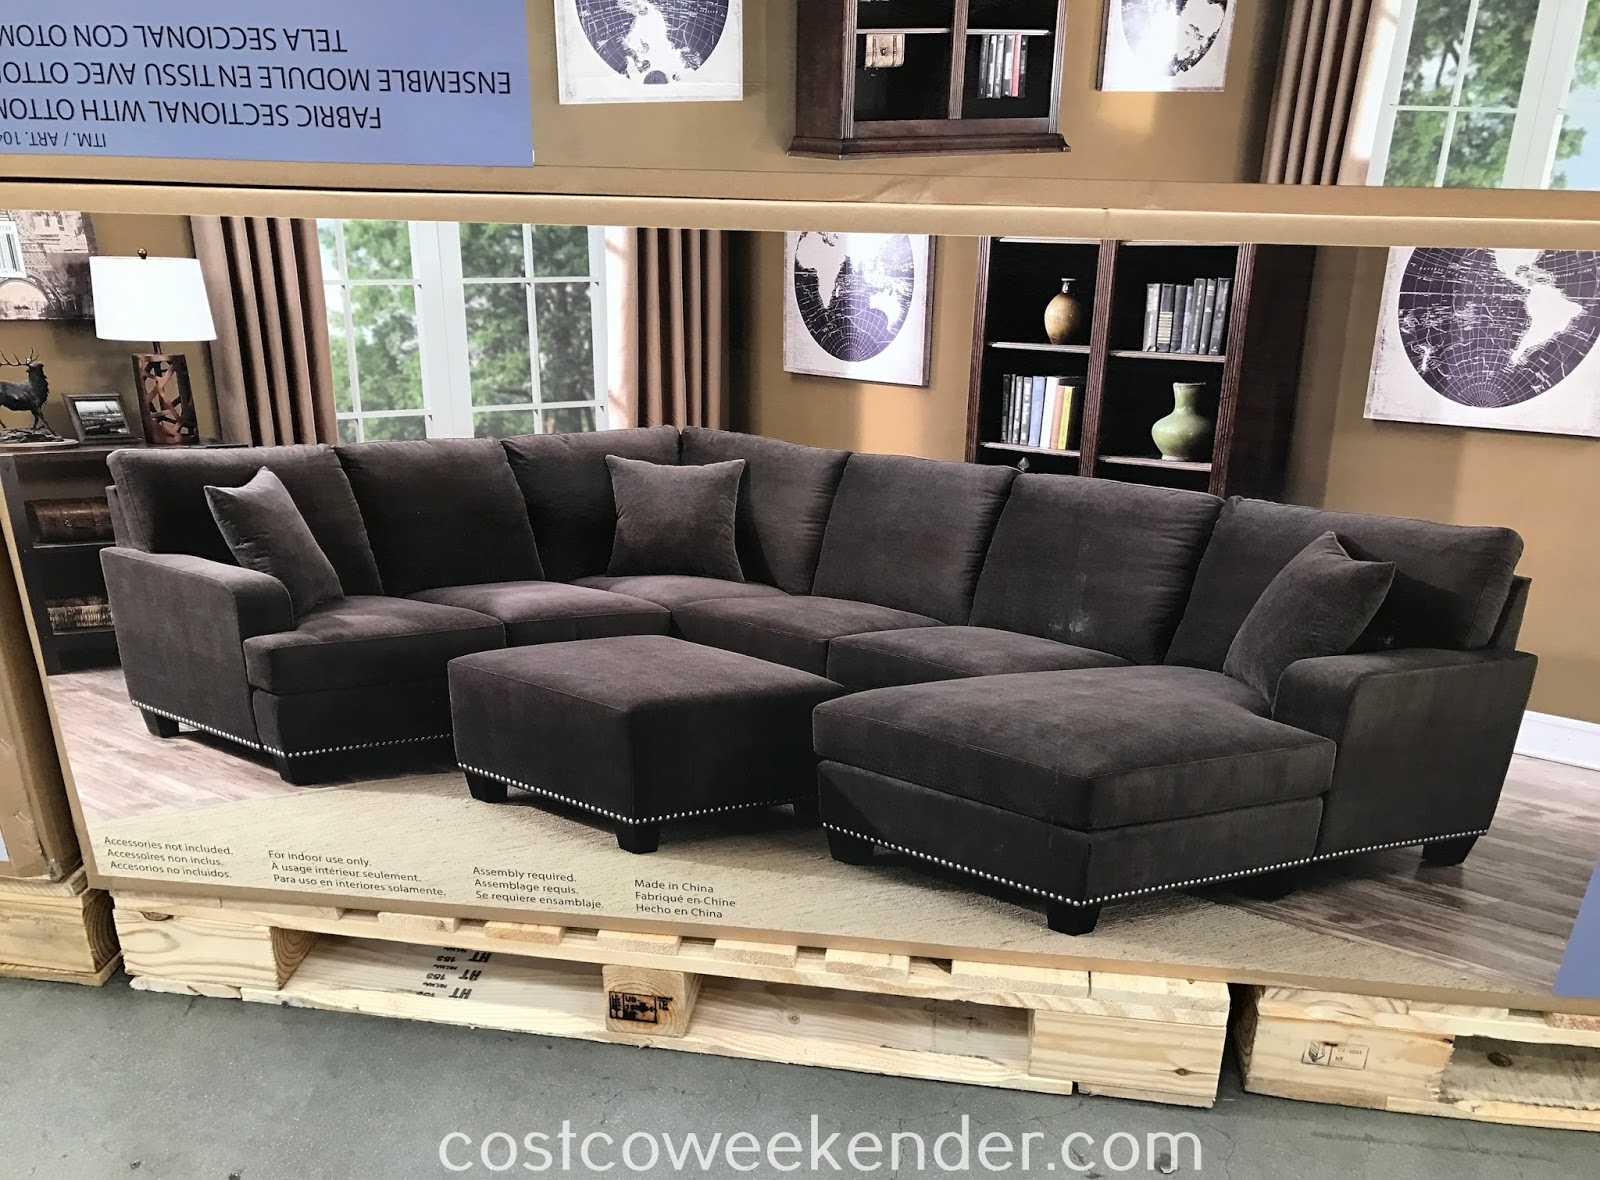 Bainbridge fabric sectional with ottoman costco weekender for 3 piece sectional sofa costco